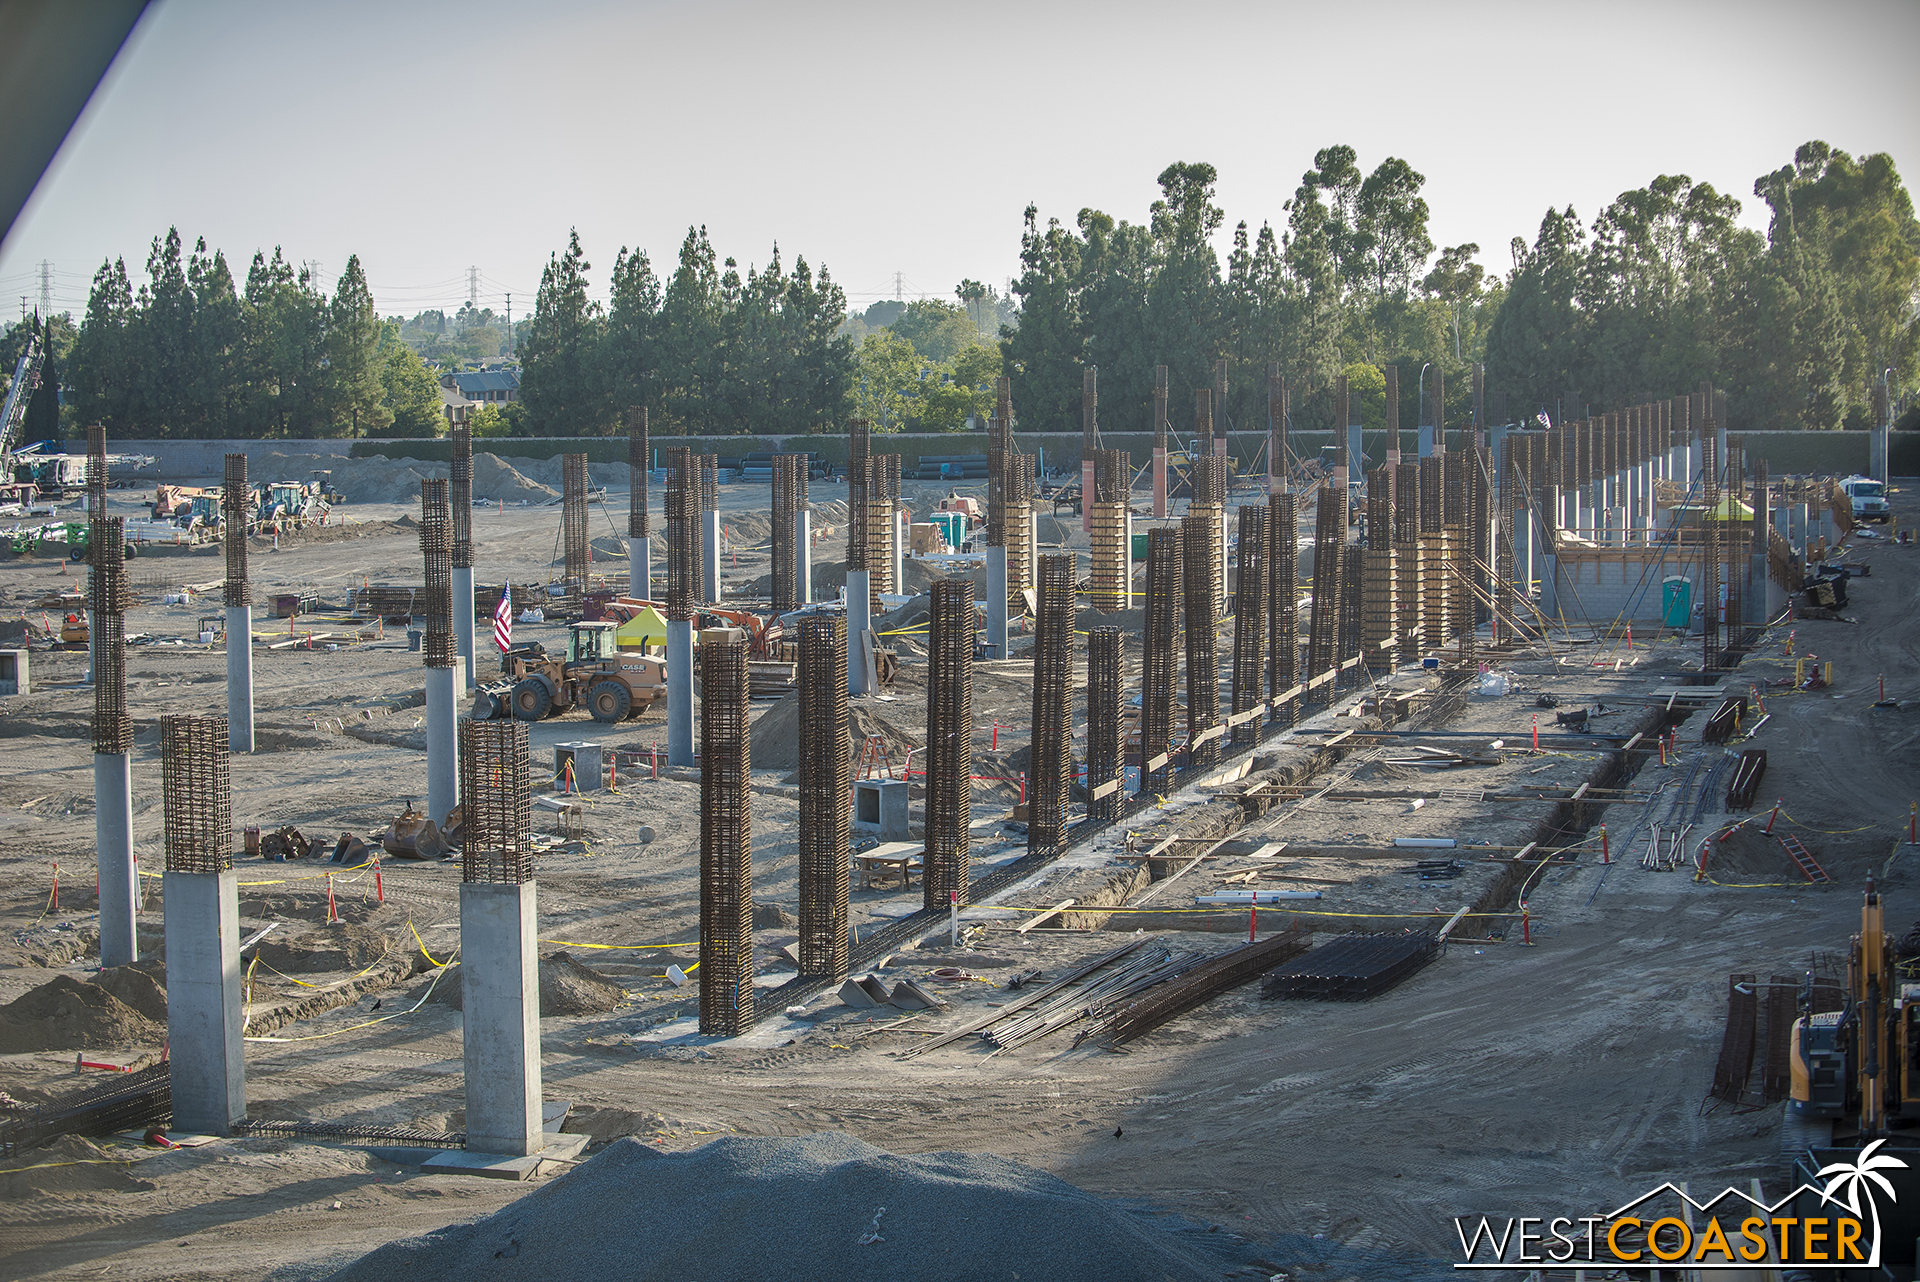 This will be the trend for a while.  Columns columns columns, and then they'll pour the deck for the level above, then more concrete columns being formed, then more deck.  Rinse and repeat and rise up, future parking structure!